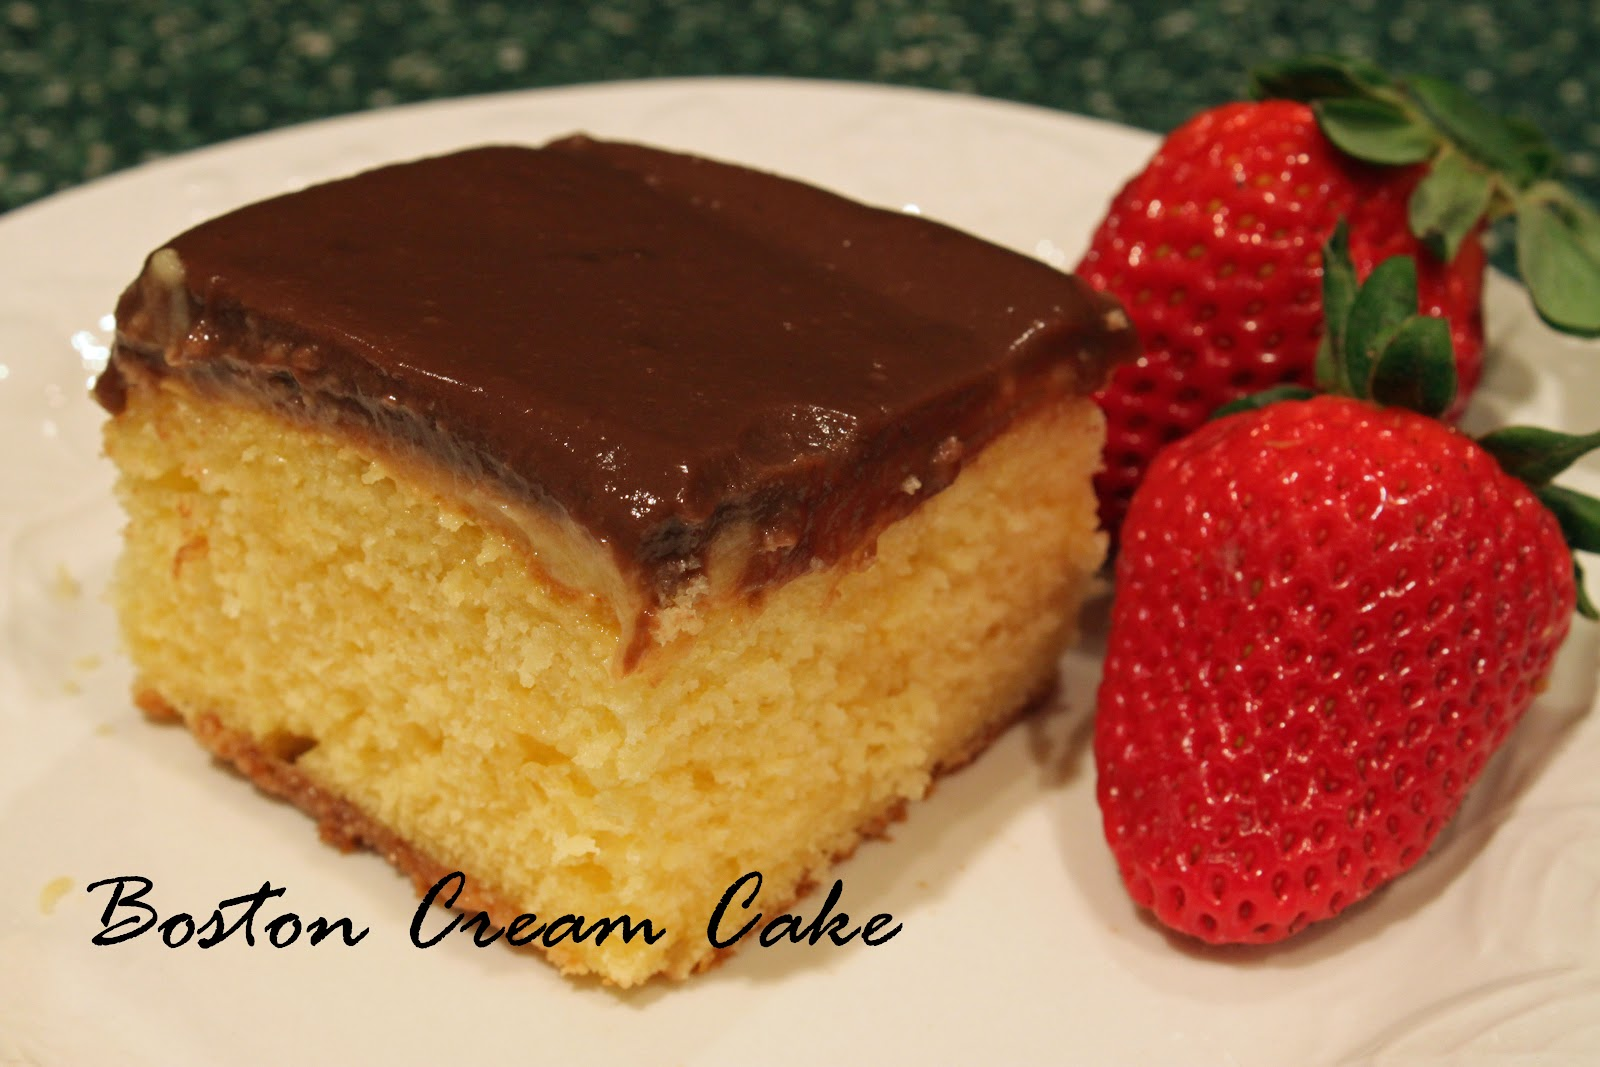 Boston Cream Cake Recipe Easy